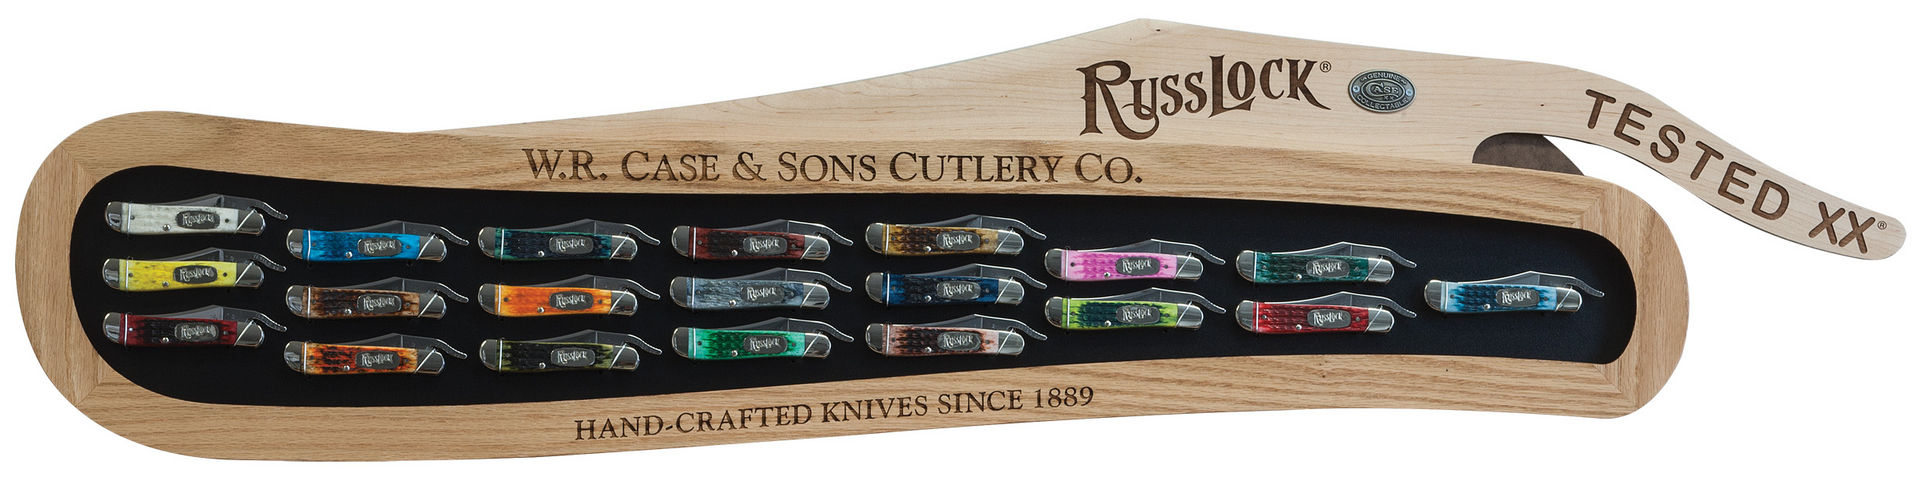 CASE XX KNIFE 21953 RUSSLOCK COMMEMORATIVE SET